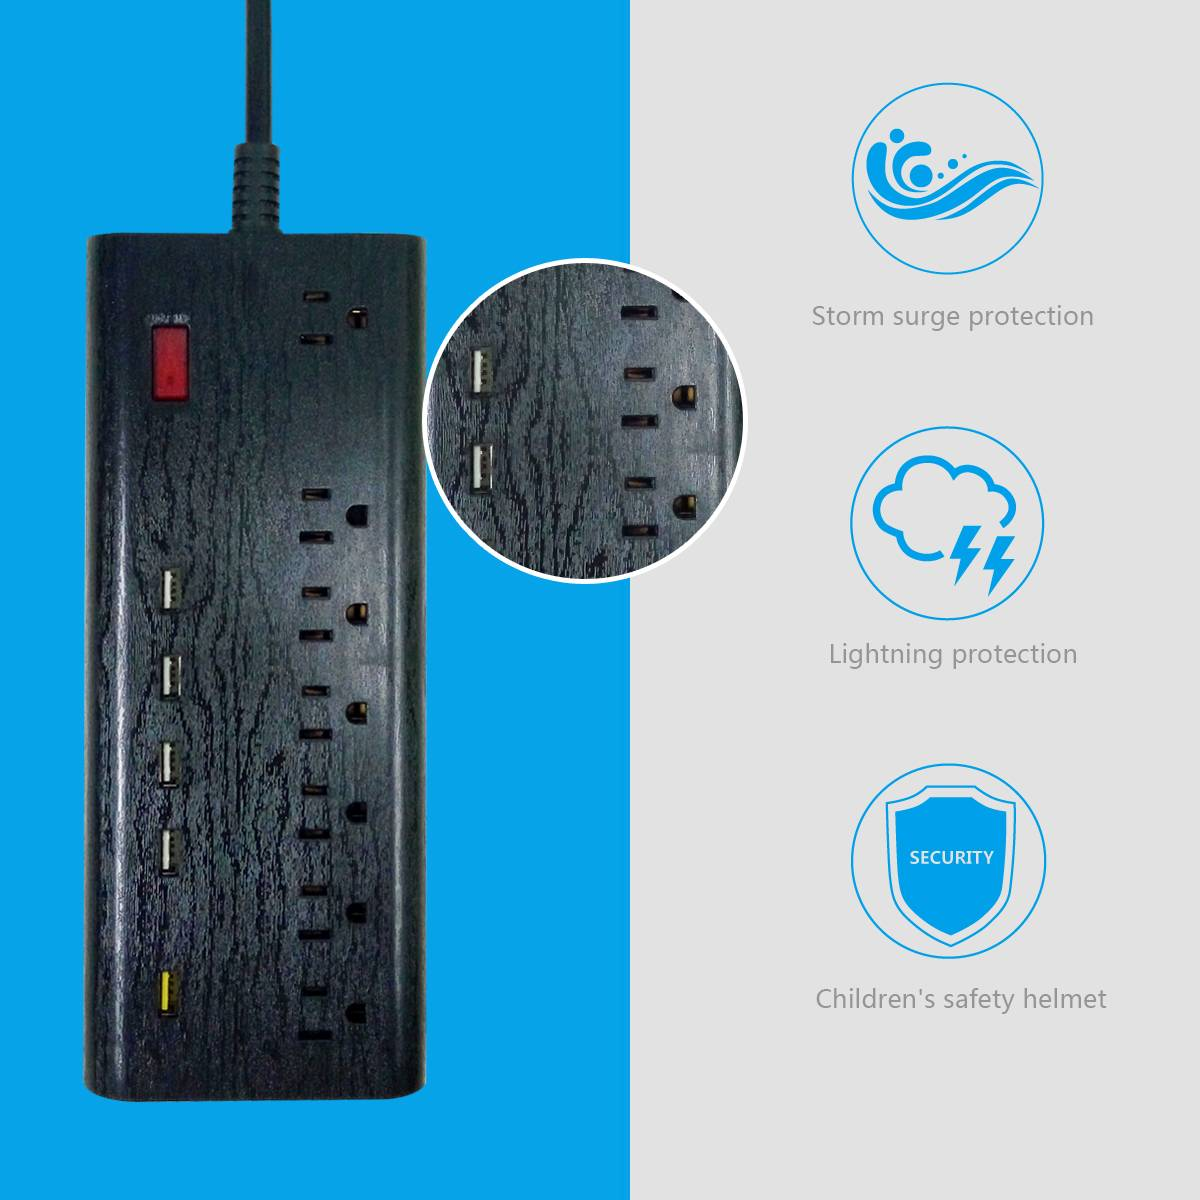 US type multiple outlet extension cord 7 outlet with usb port surge protection